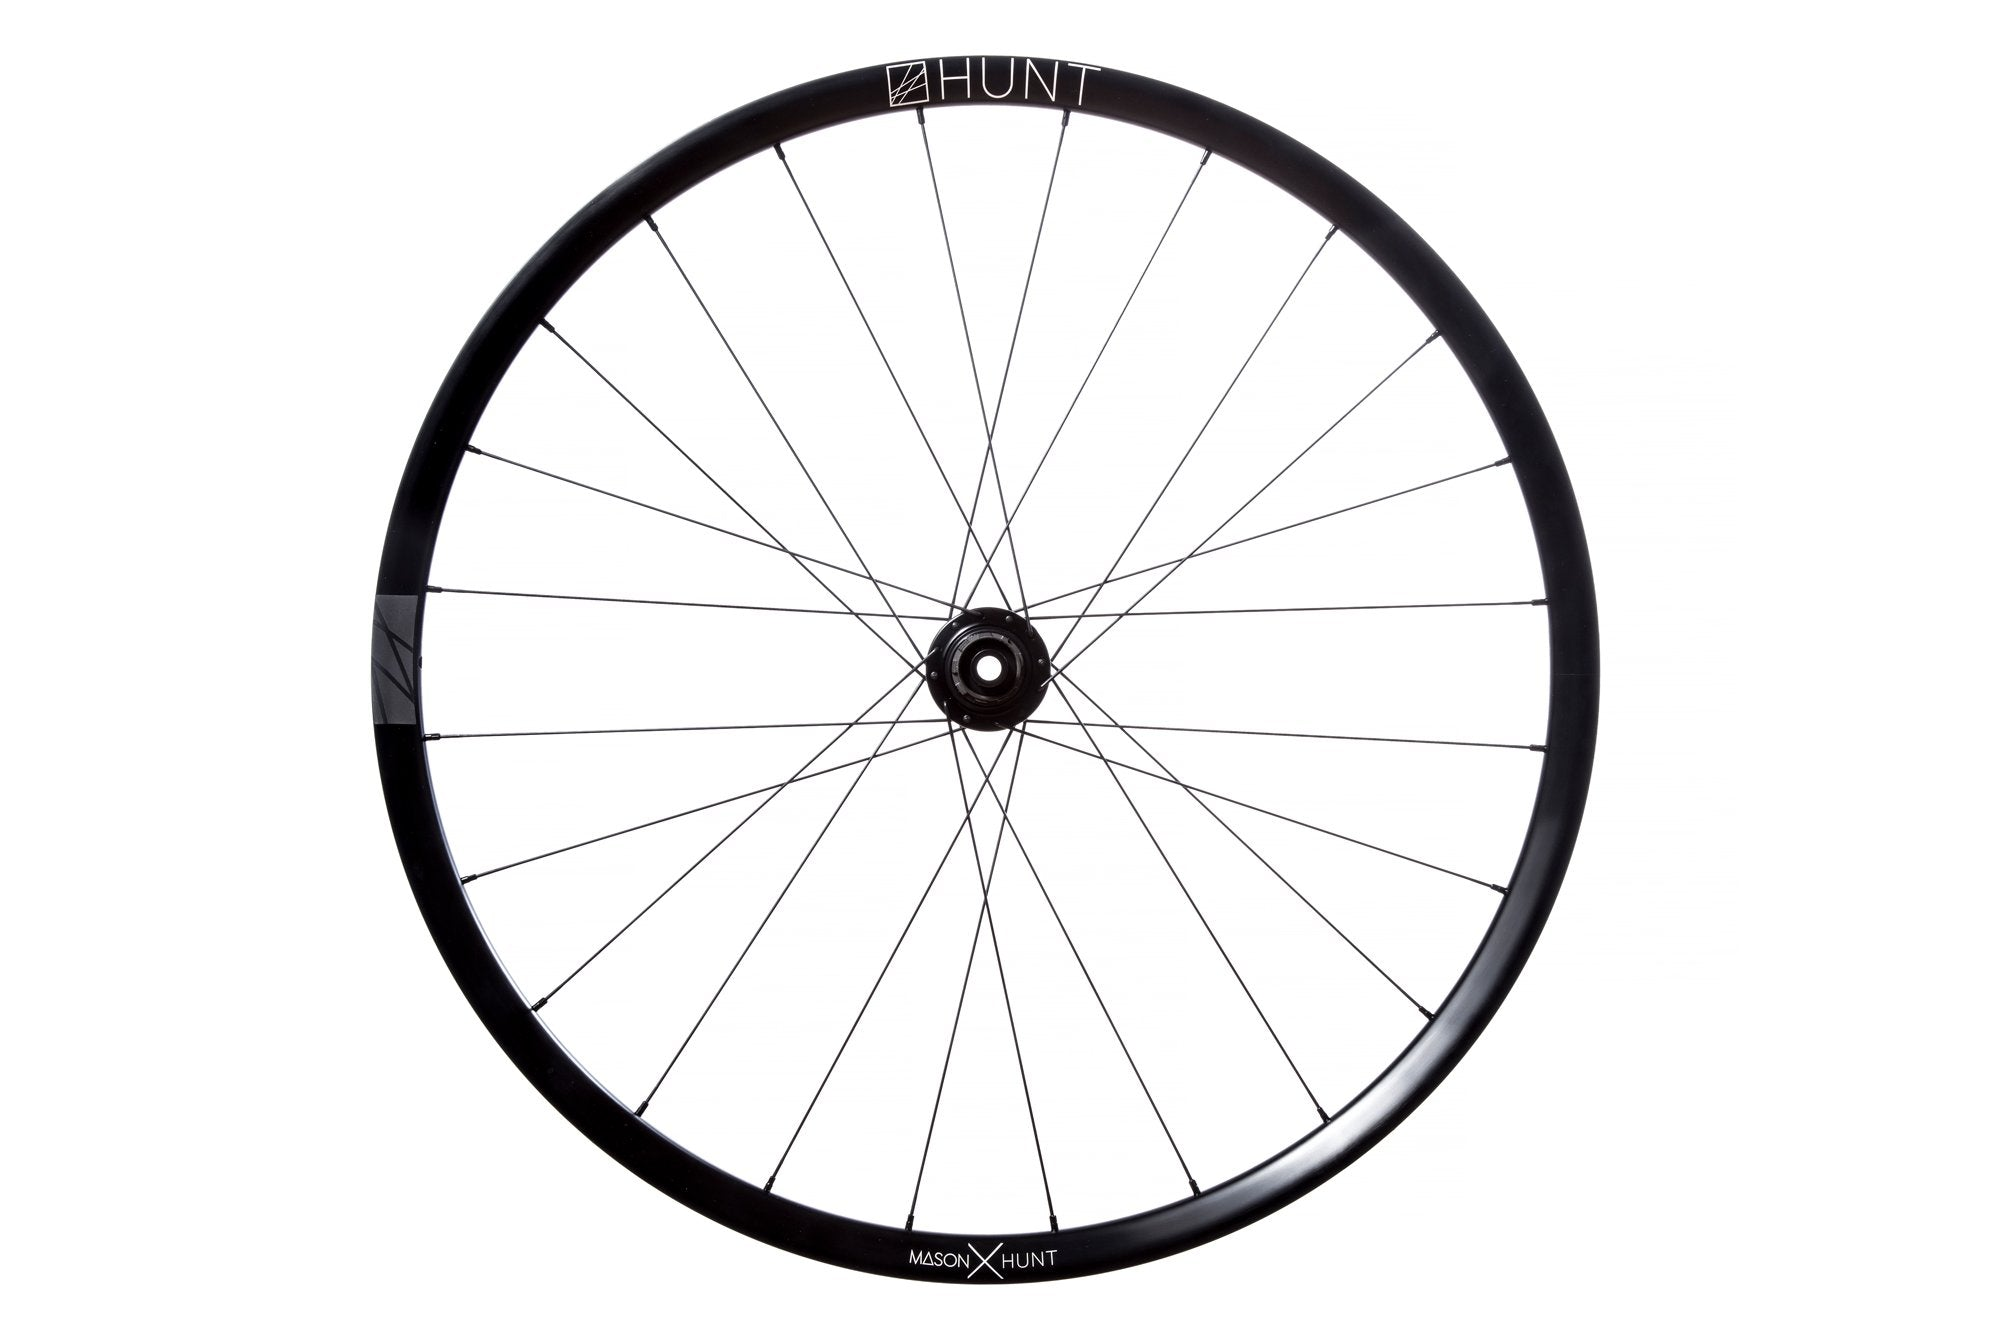 <h1>Spokes</h1><i>We chose the top-of-the-range Pillar Spoke Re-enforcement PSR XTRA models. These butted spokes are lighter and provide a greater degree of elasticity to maintain tensions and add fatigue resistance. These PSR J-bend spokes feature the 2.2 width at the spoke head providing more material in this high stress area. The nipples come with a square head so you can achieve precise tensioning. Combining these components well is key which is why all HUNT wheels are hand-built.</i>